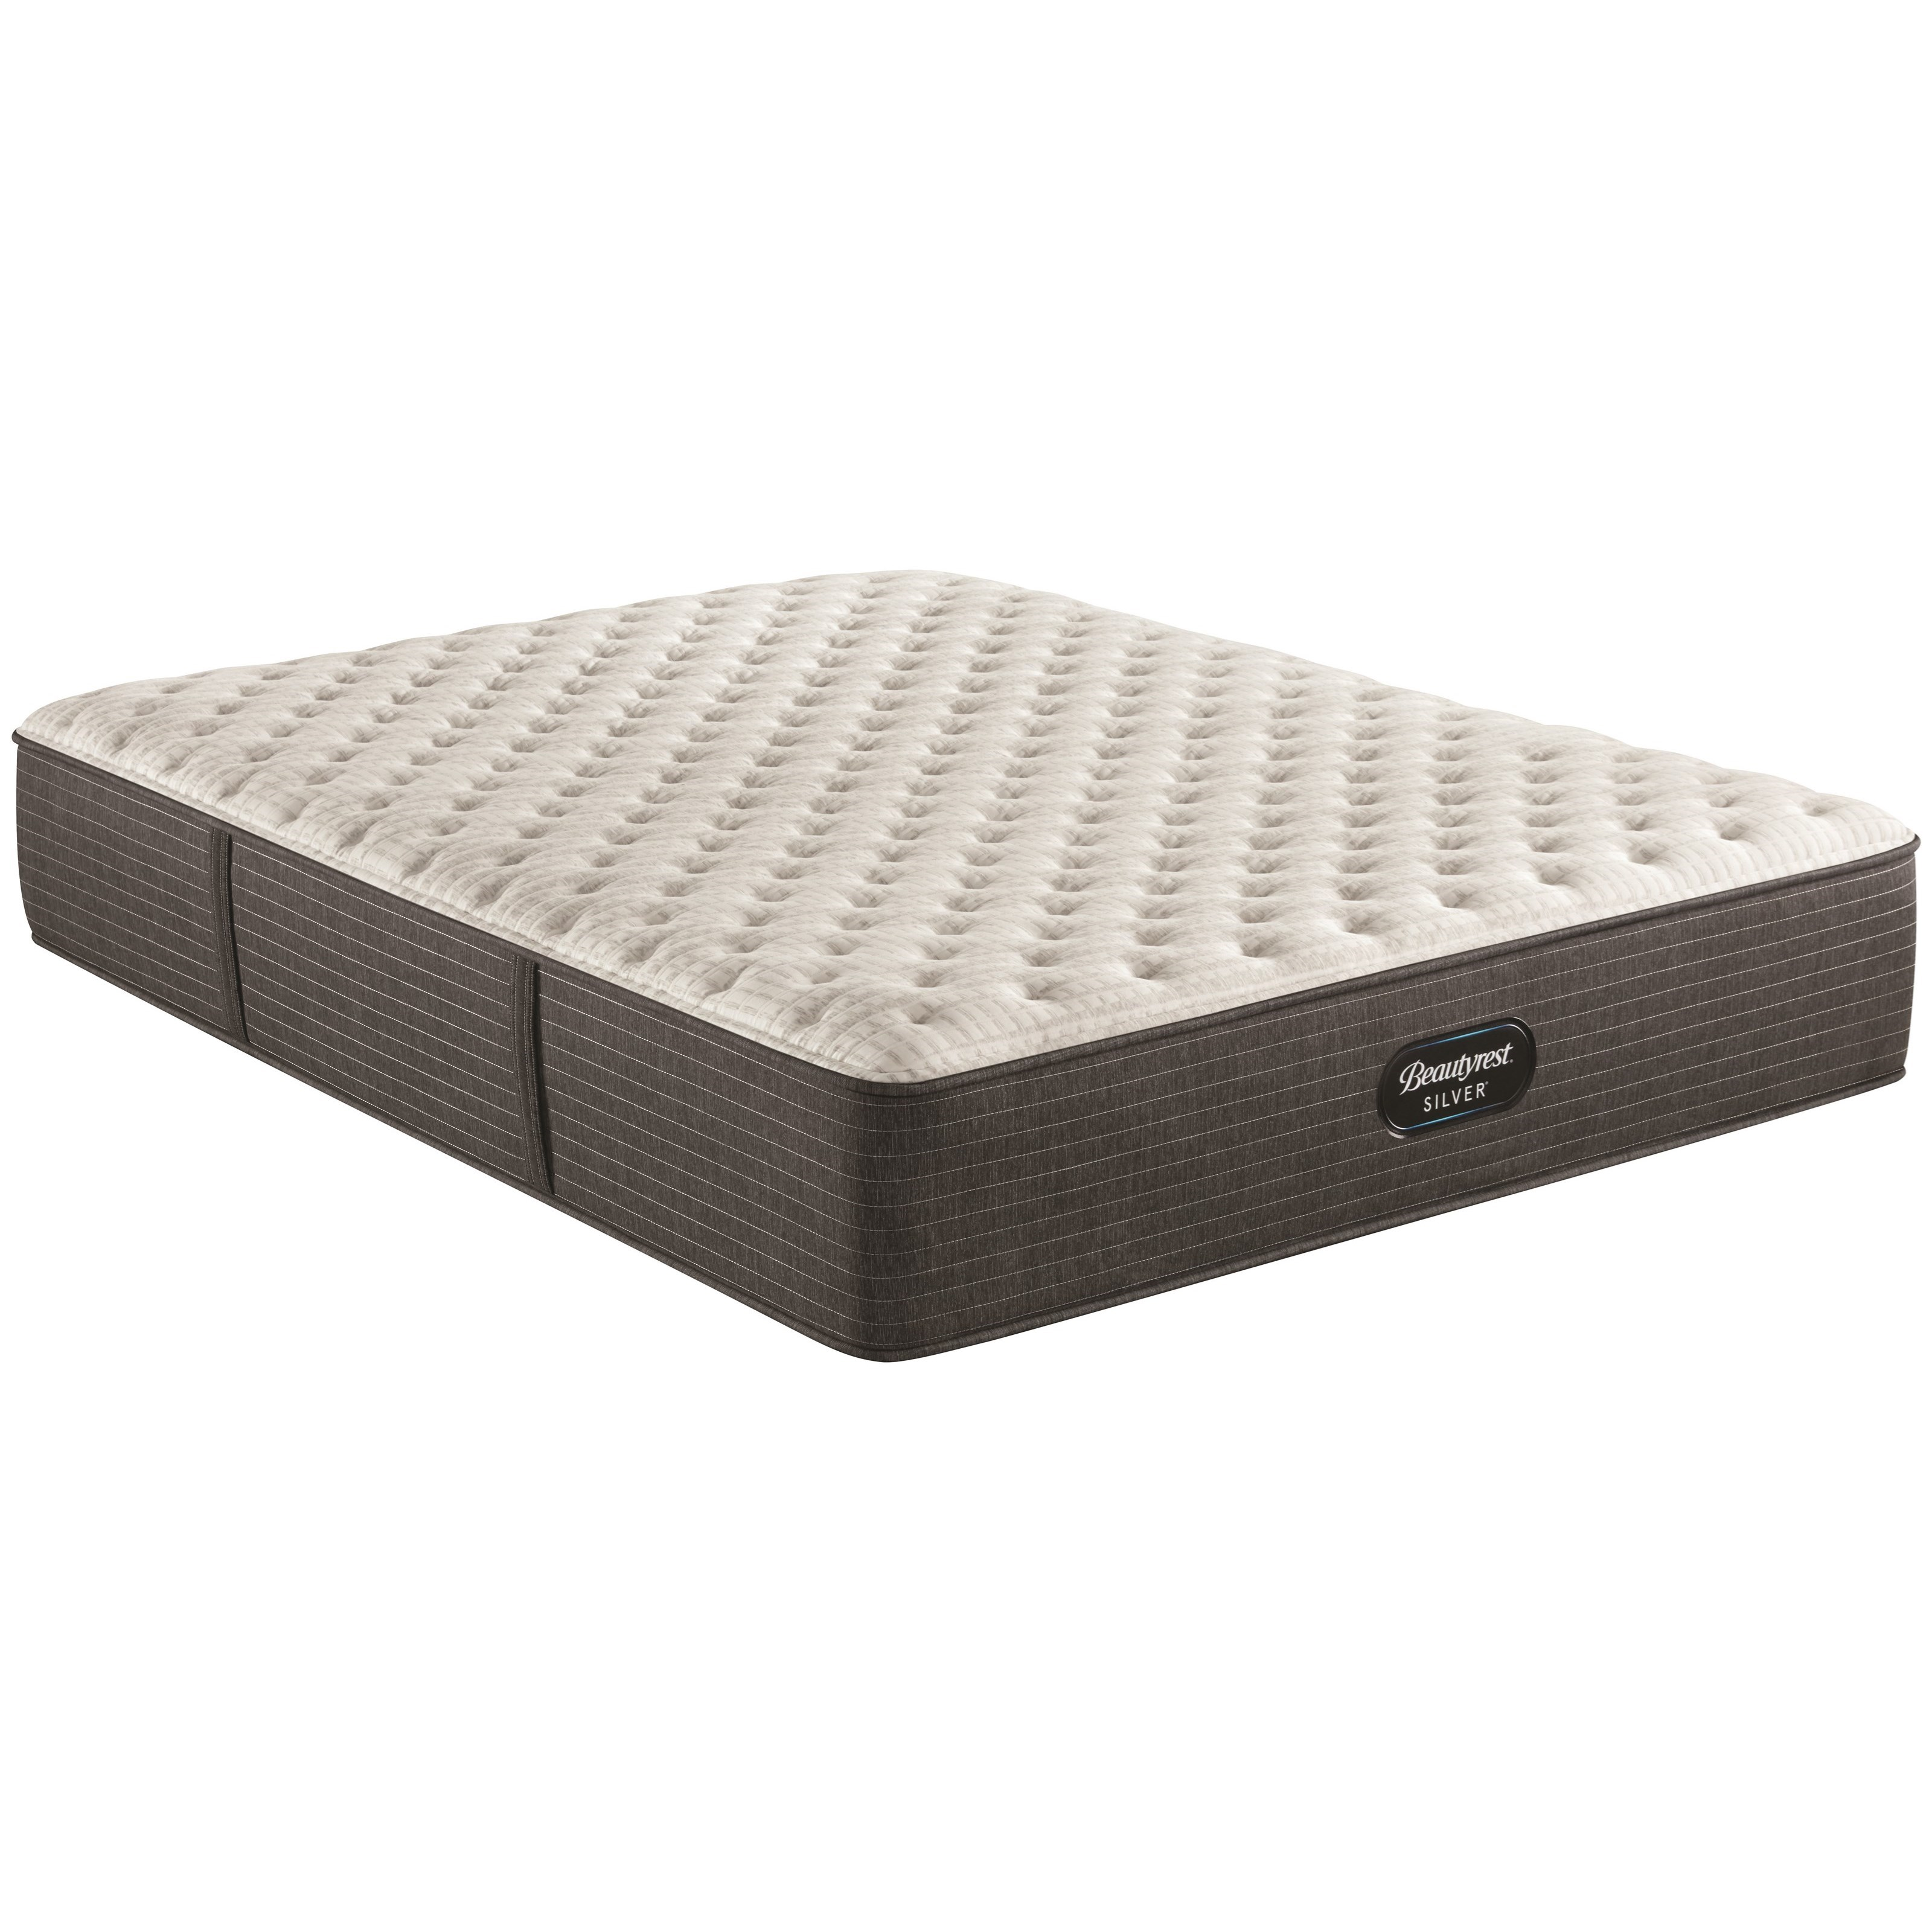 BRS900-C Extra Firm Beautyrest Cal King Extra Firm Mattress by Beautyrest at HomeWorld Furniture